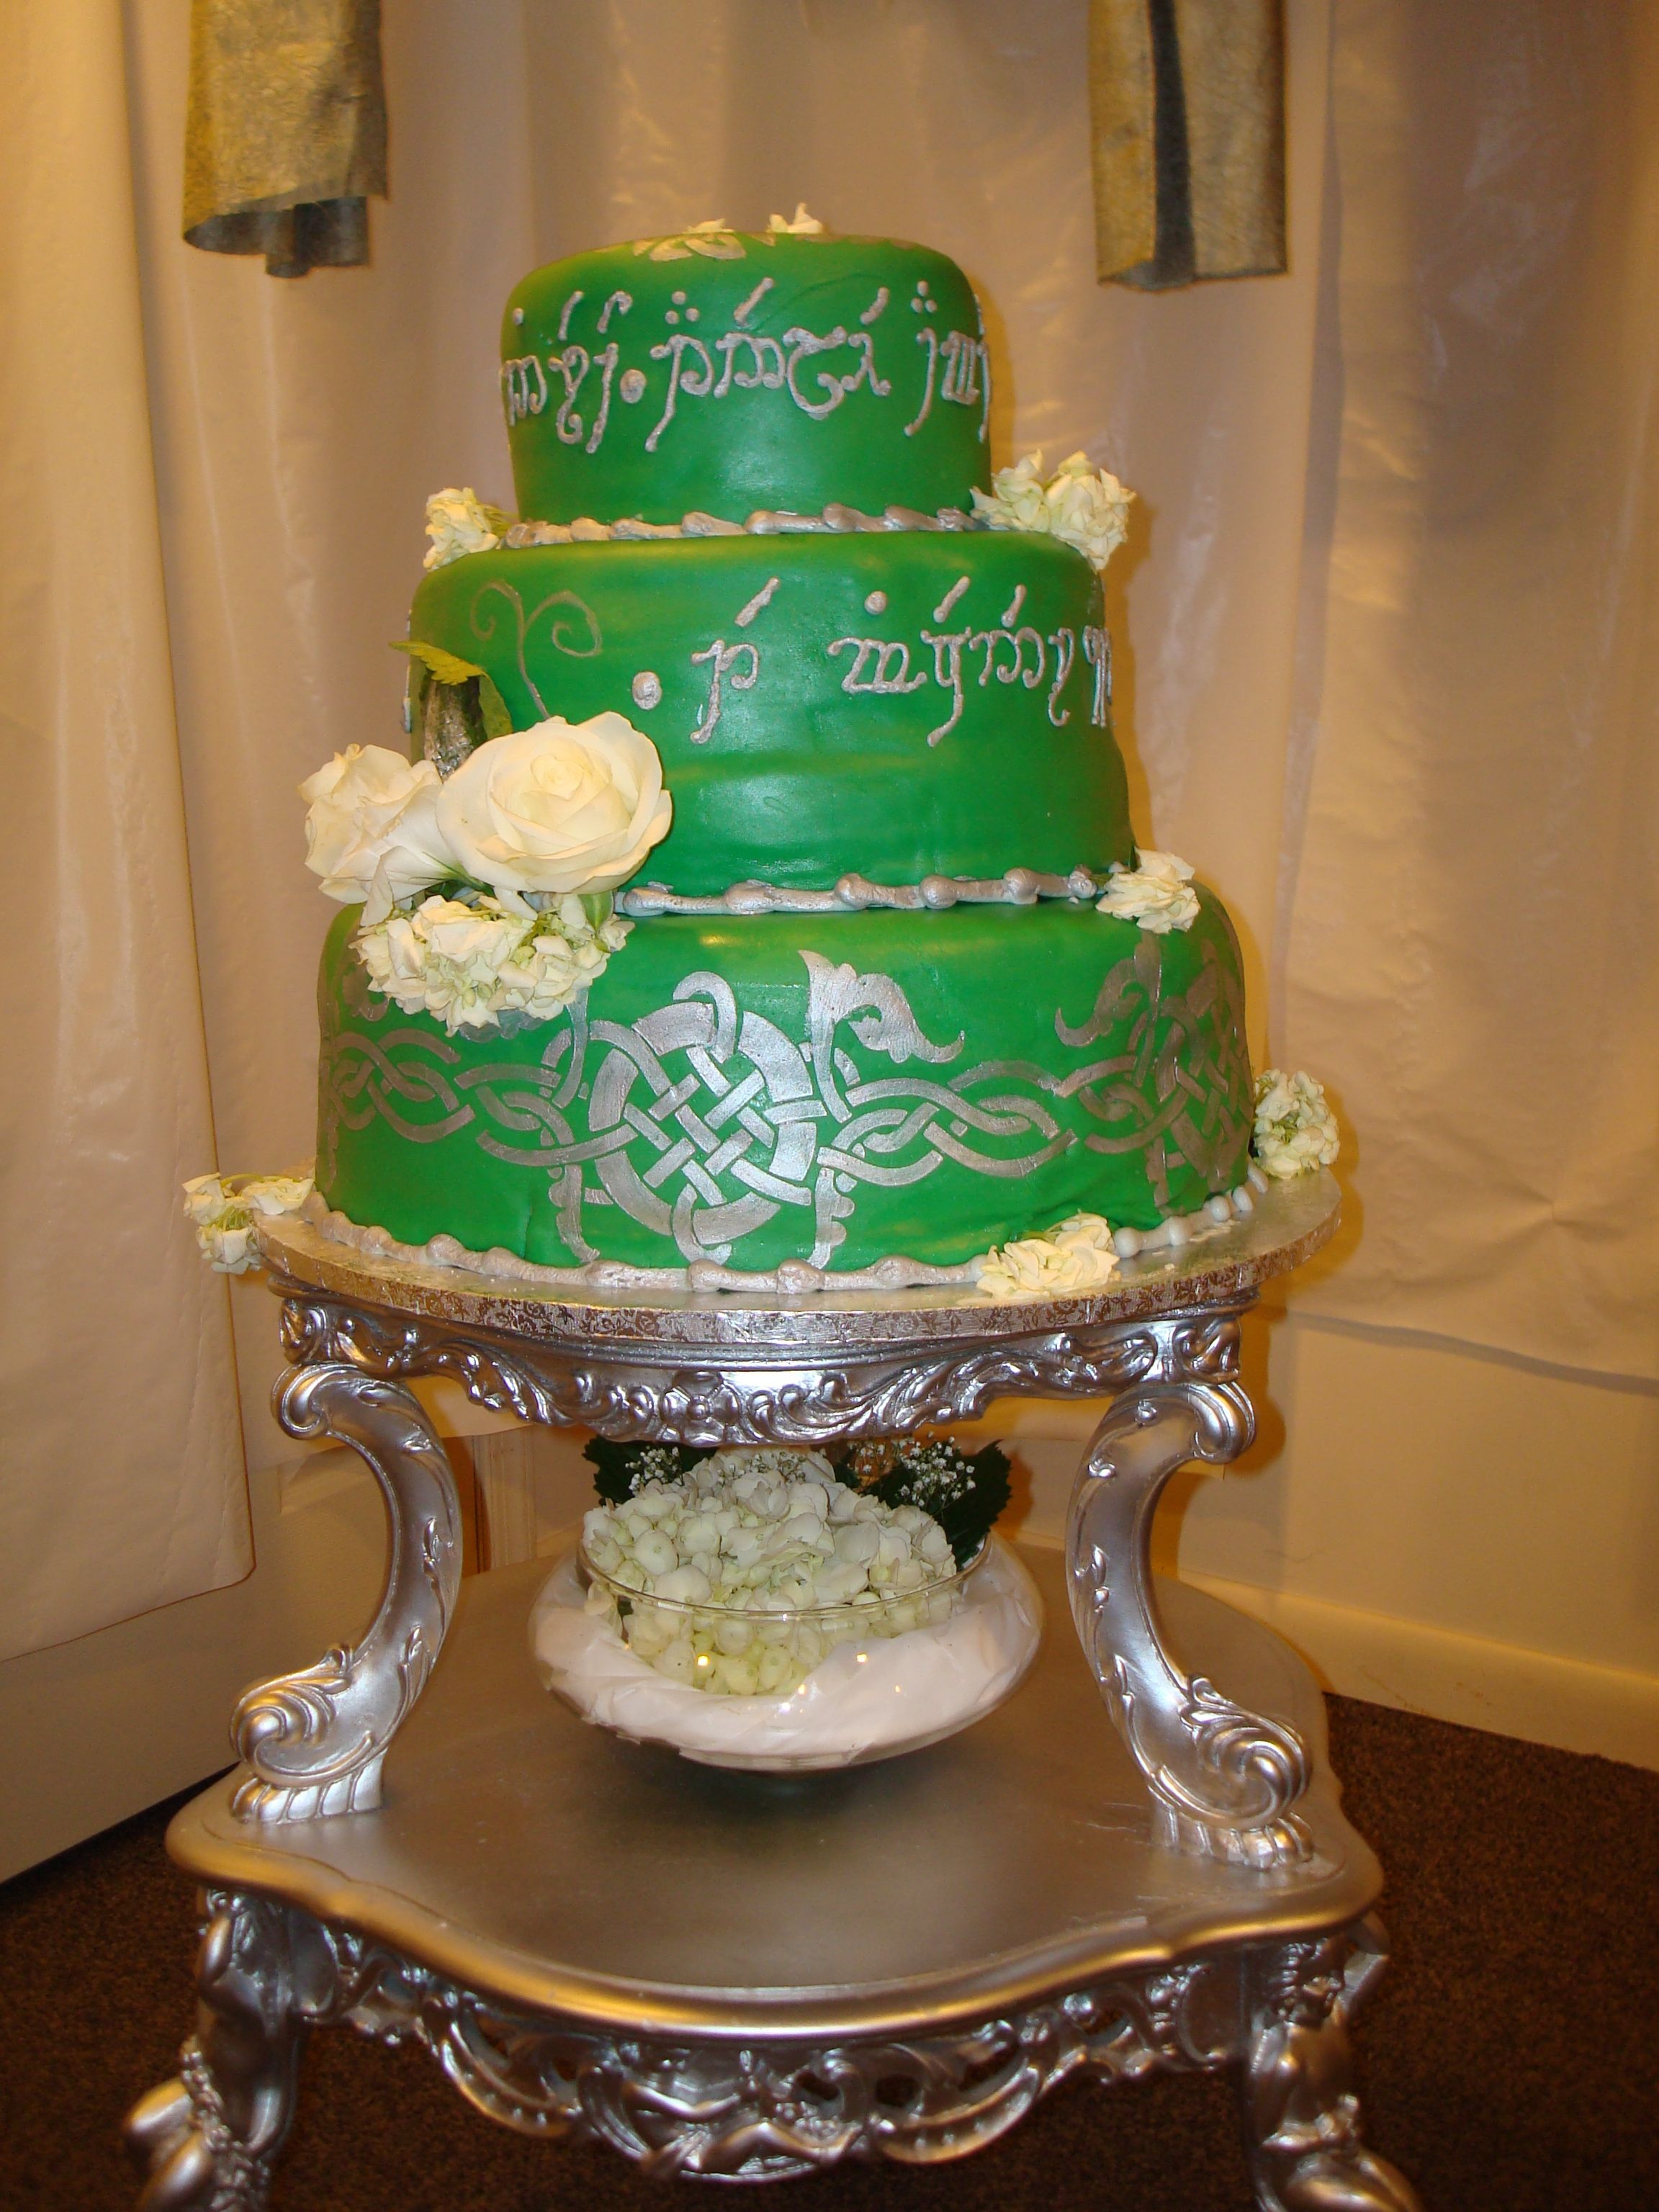 LOTR Orthodox Wedding Cake This is a green wedding cake with the